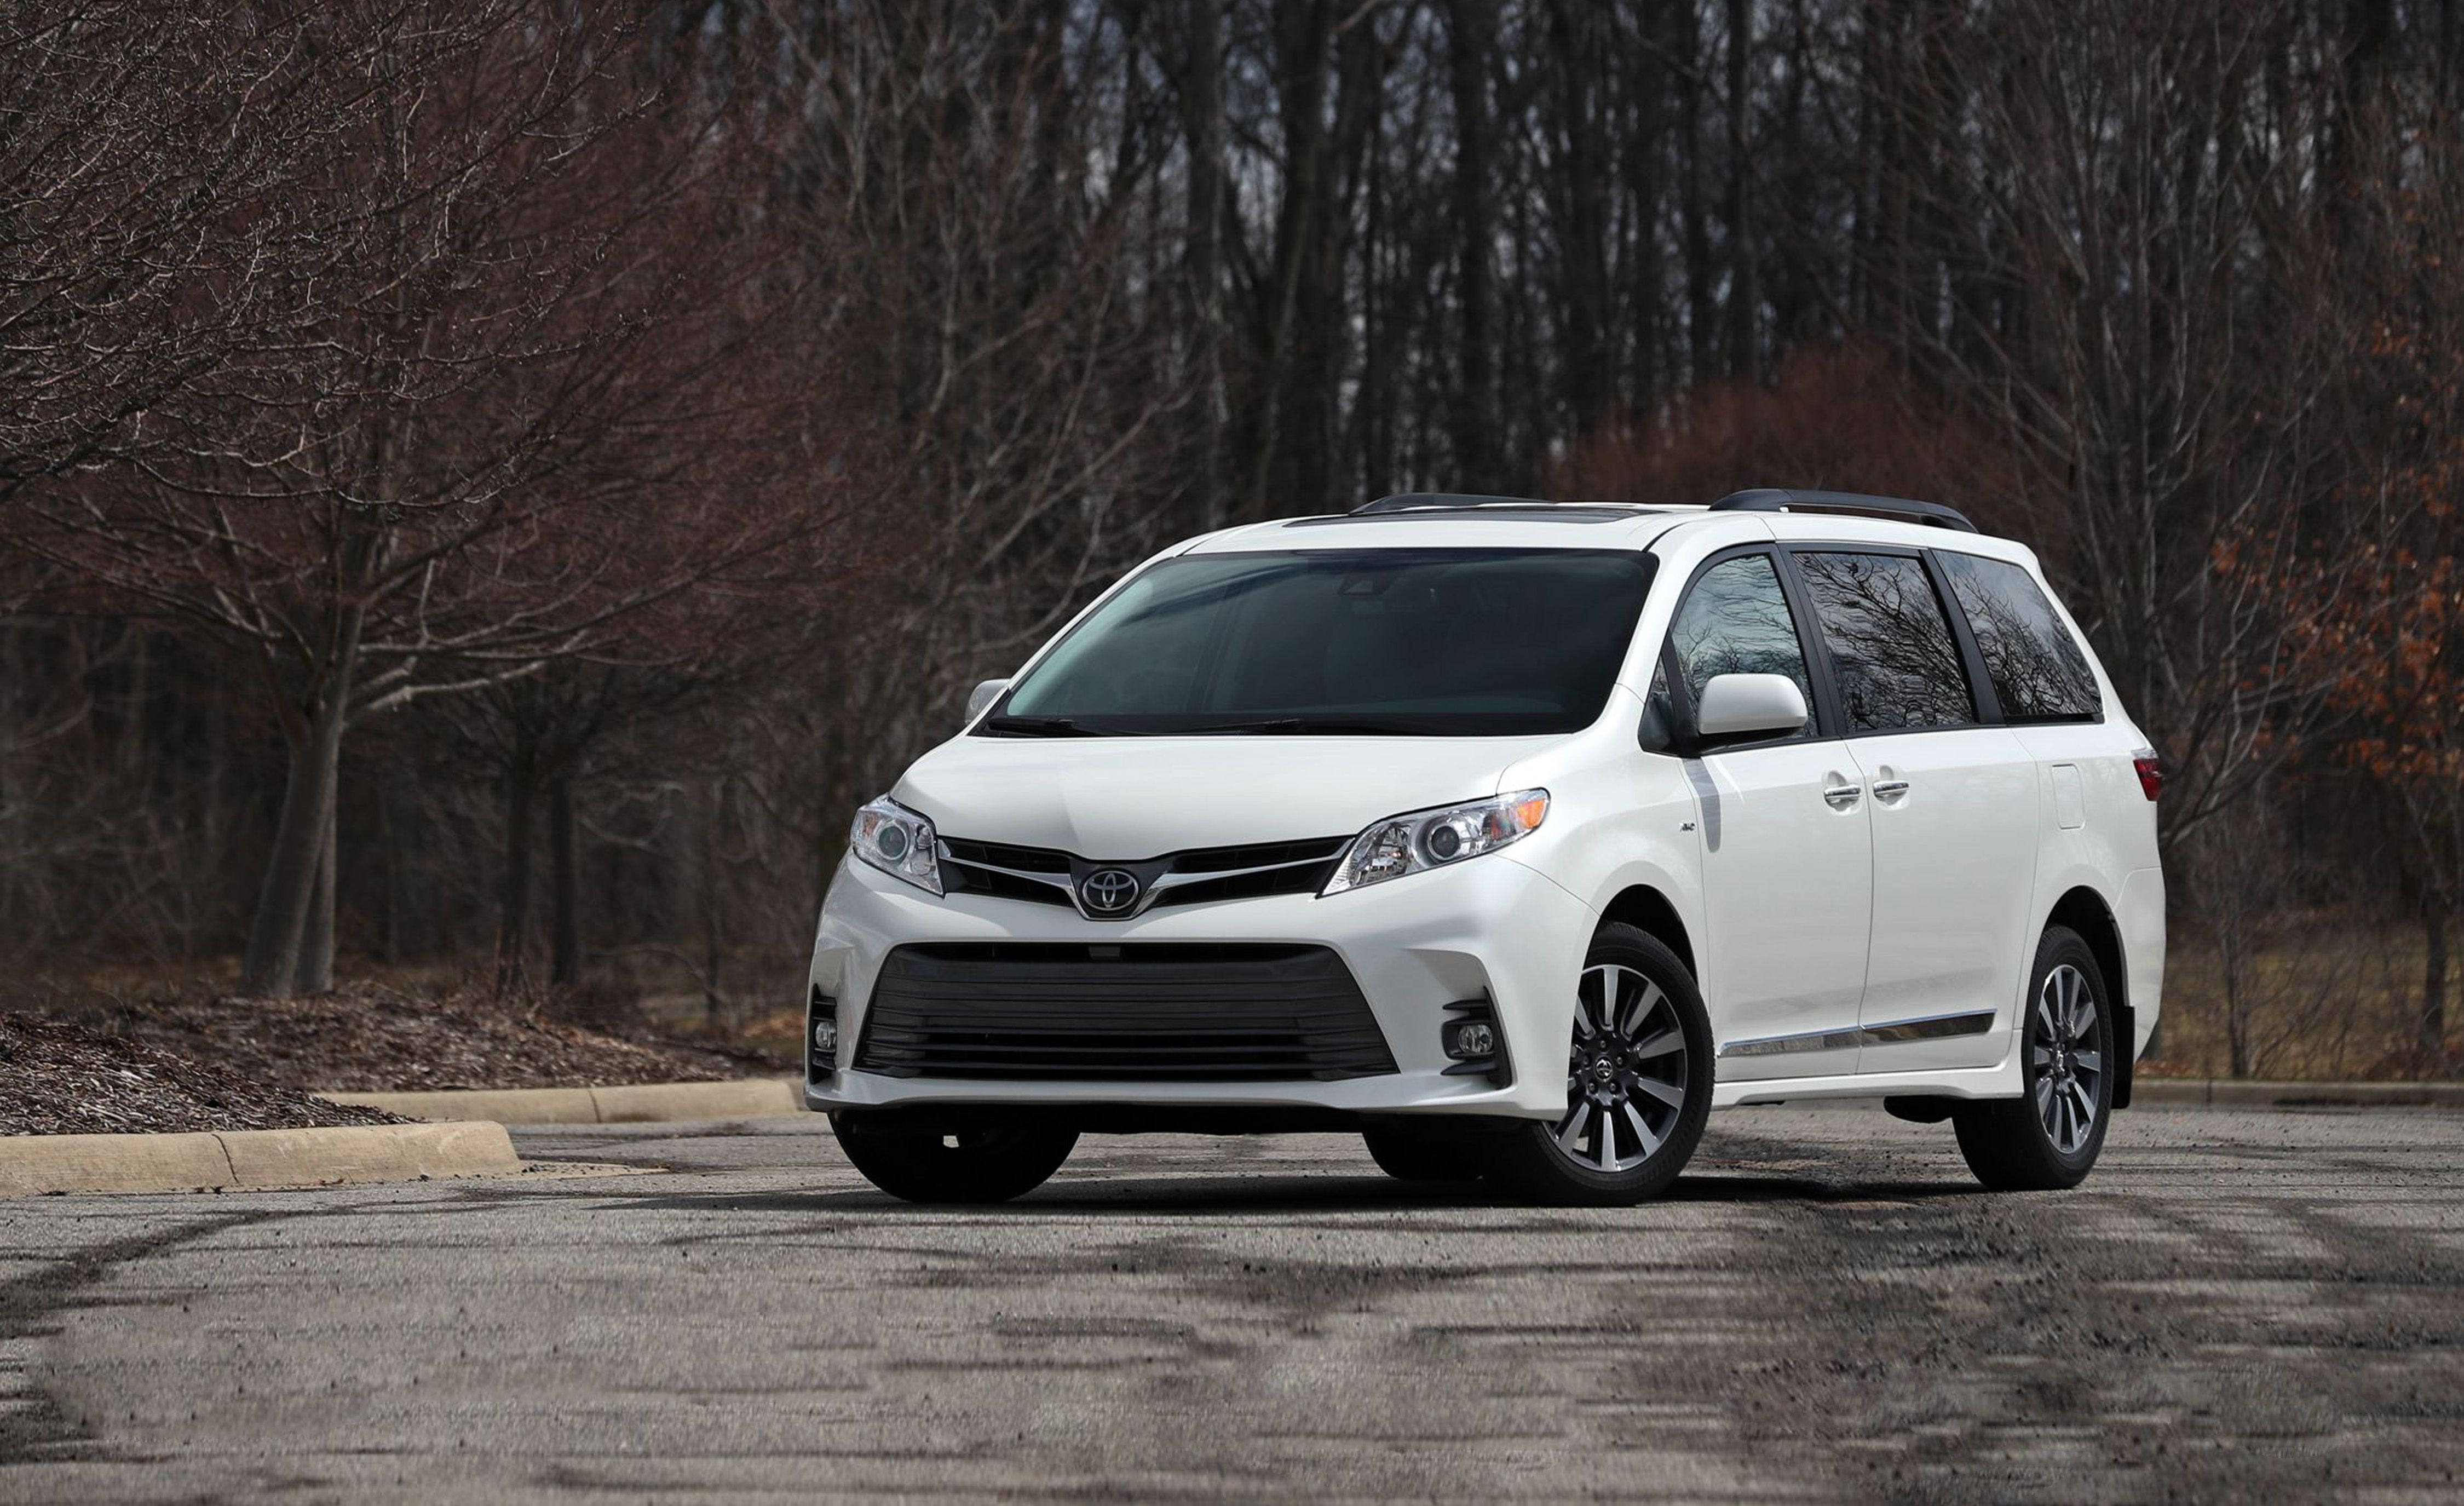 2019 toyota sienna review pricing and specs 2019 toyota sienna review pricing and specs